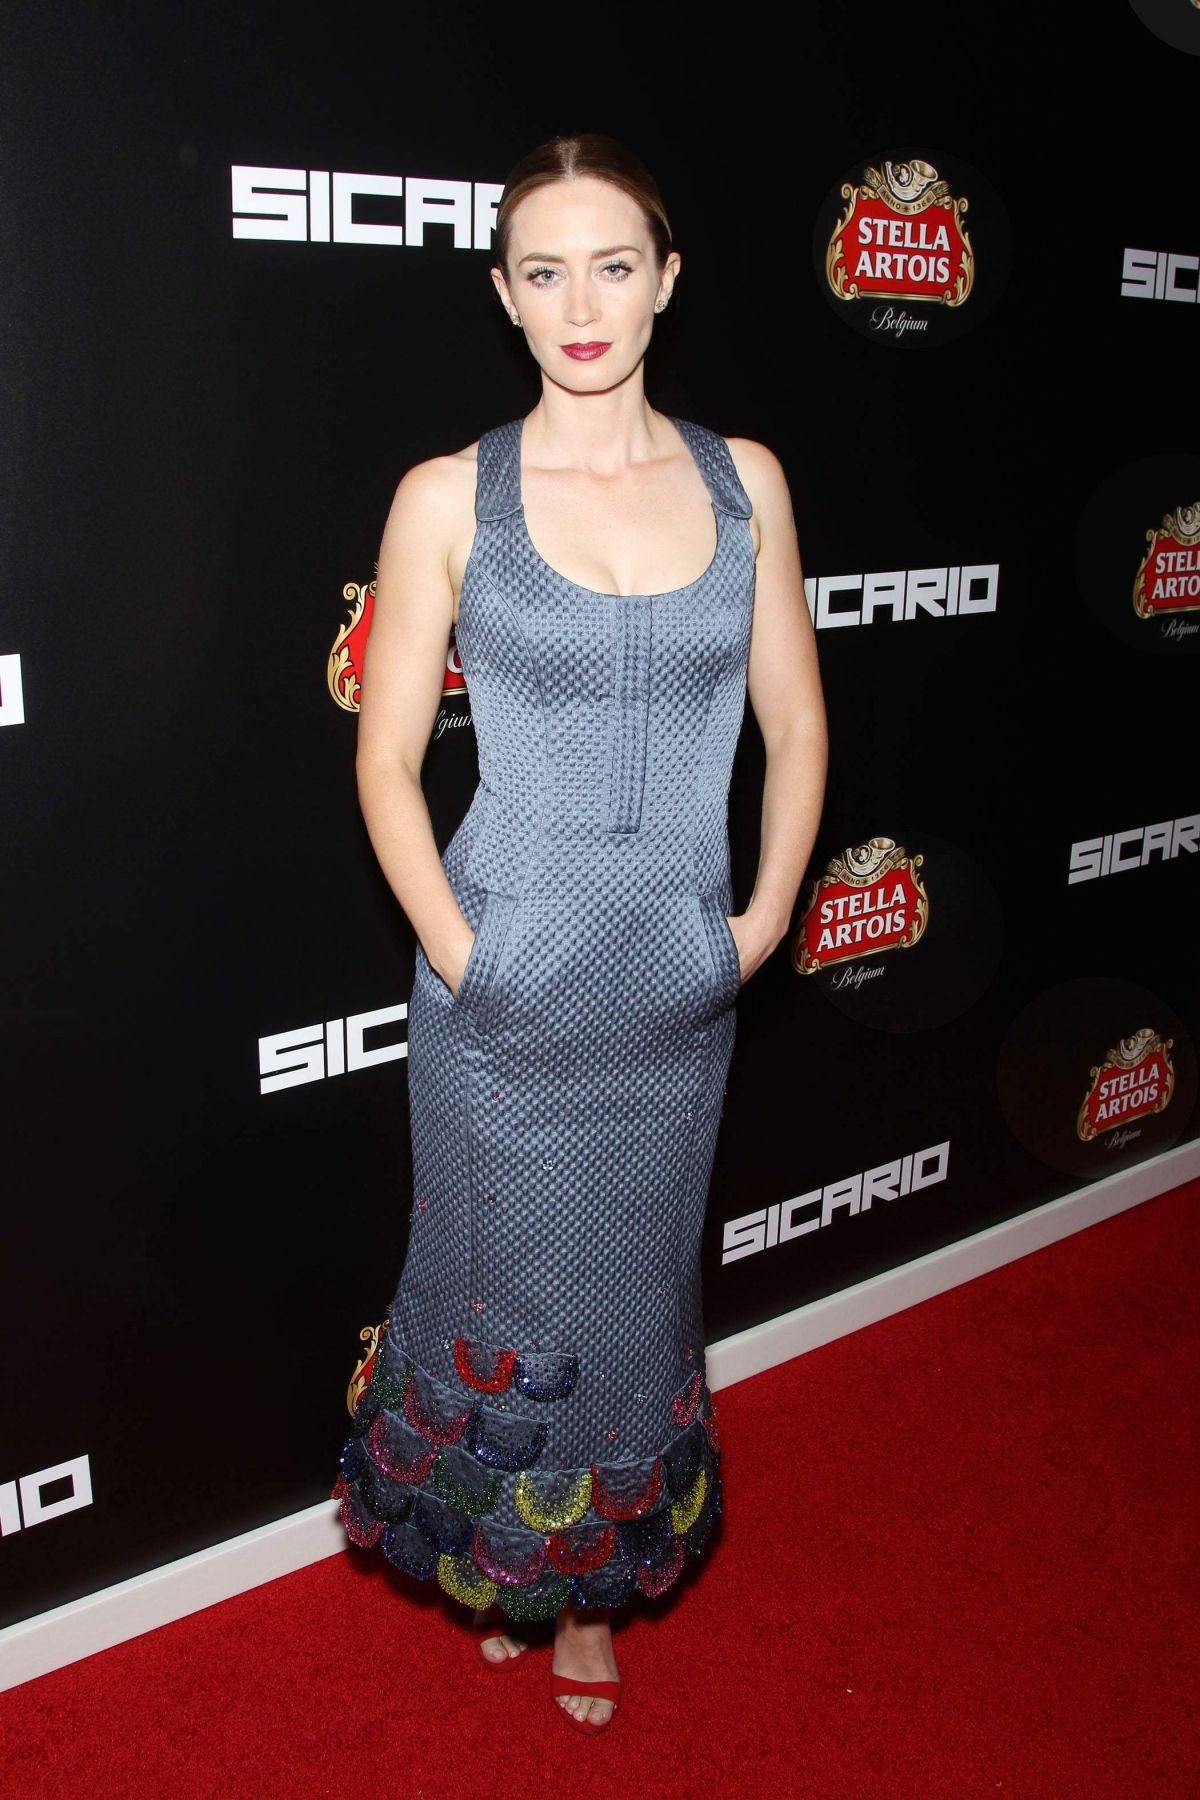 EMILY BLUNT at Sicario Premiere in New York 09/14/2015 ... Emily Blunt